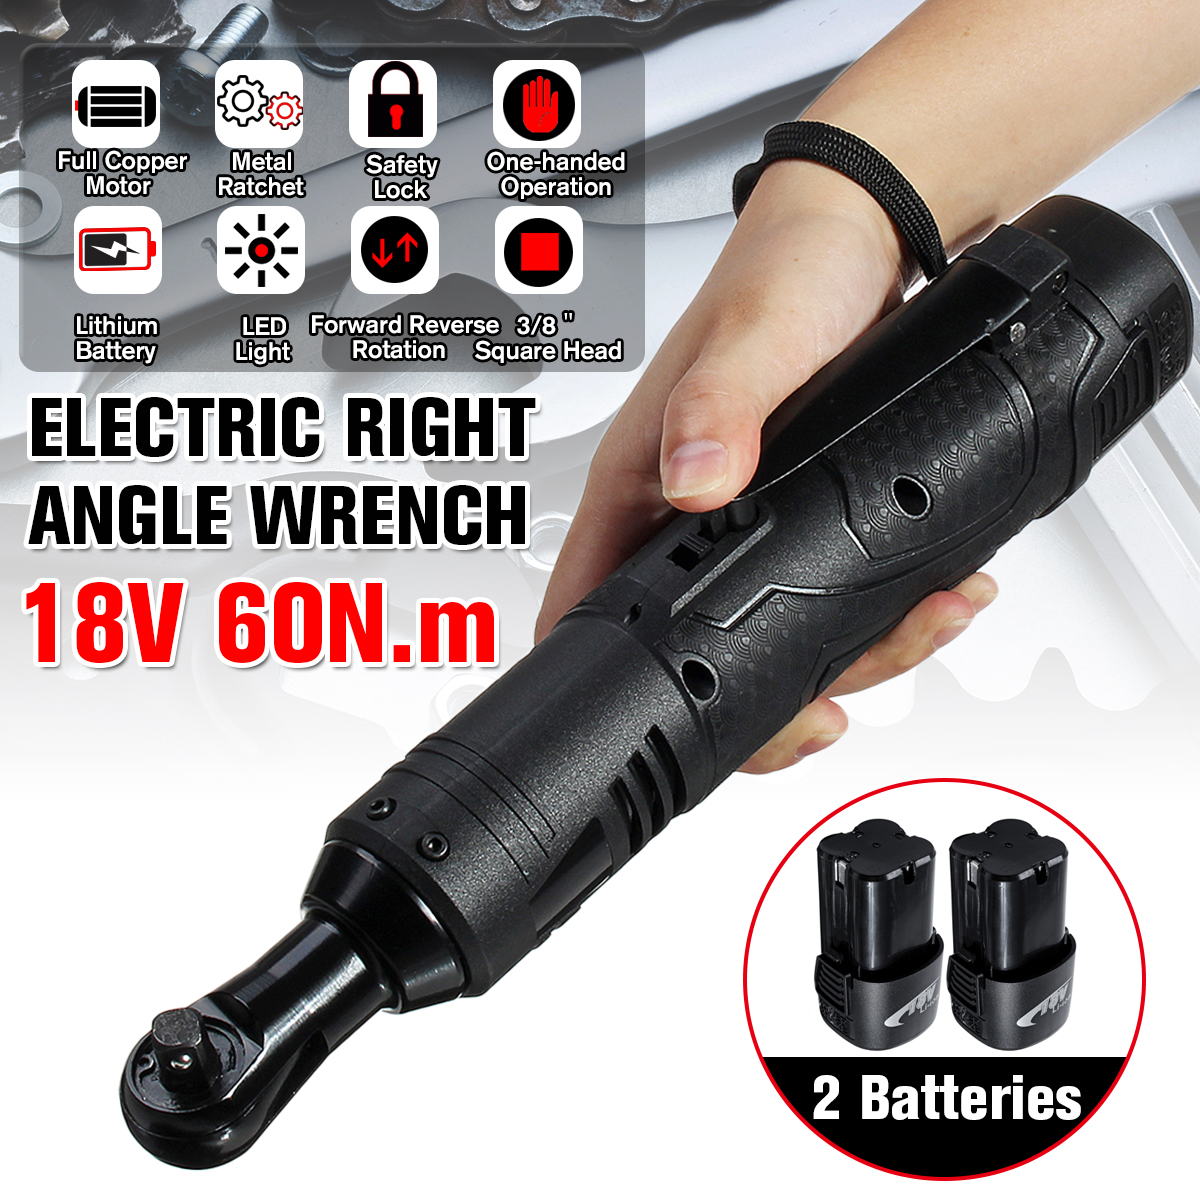 18V 60N.m Electric Right Angle Wrench 260RPM 3/8 Inch Cordless Ratchet Wrench W/ 2Pcs Battery